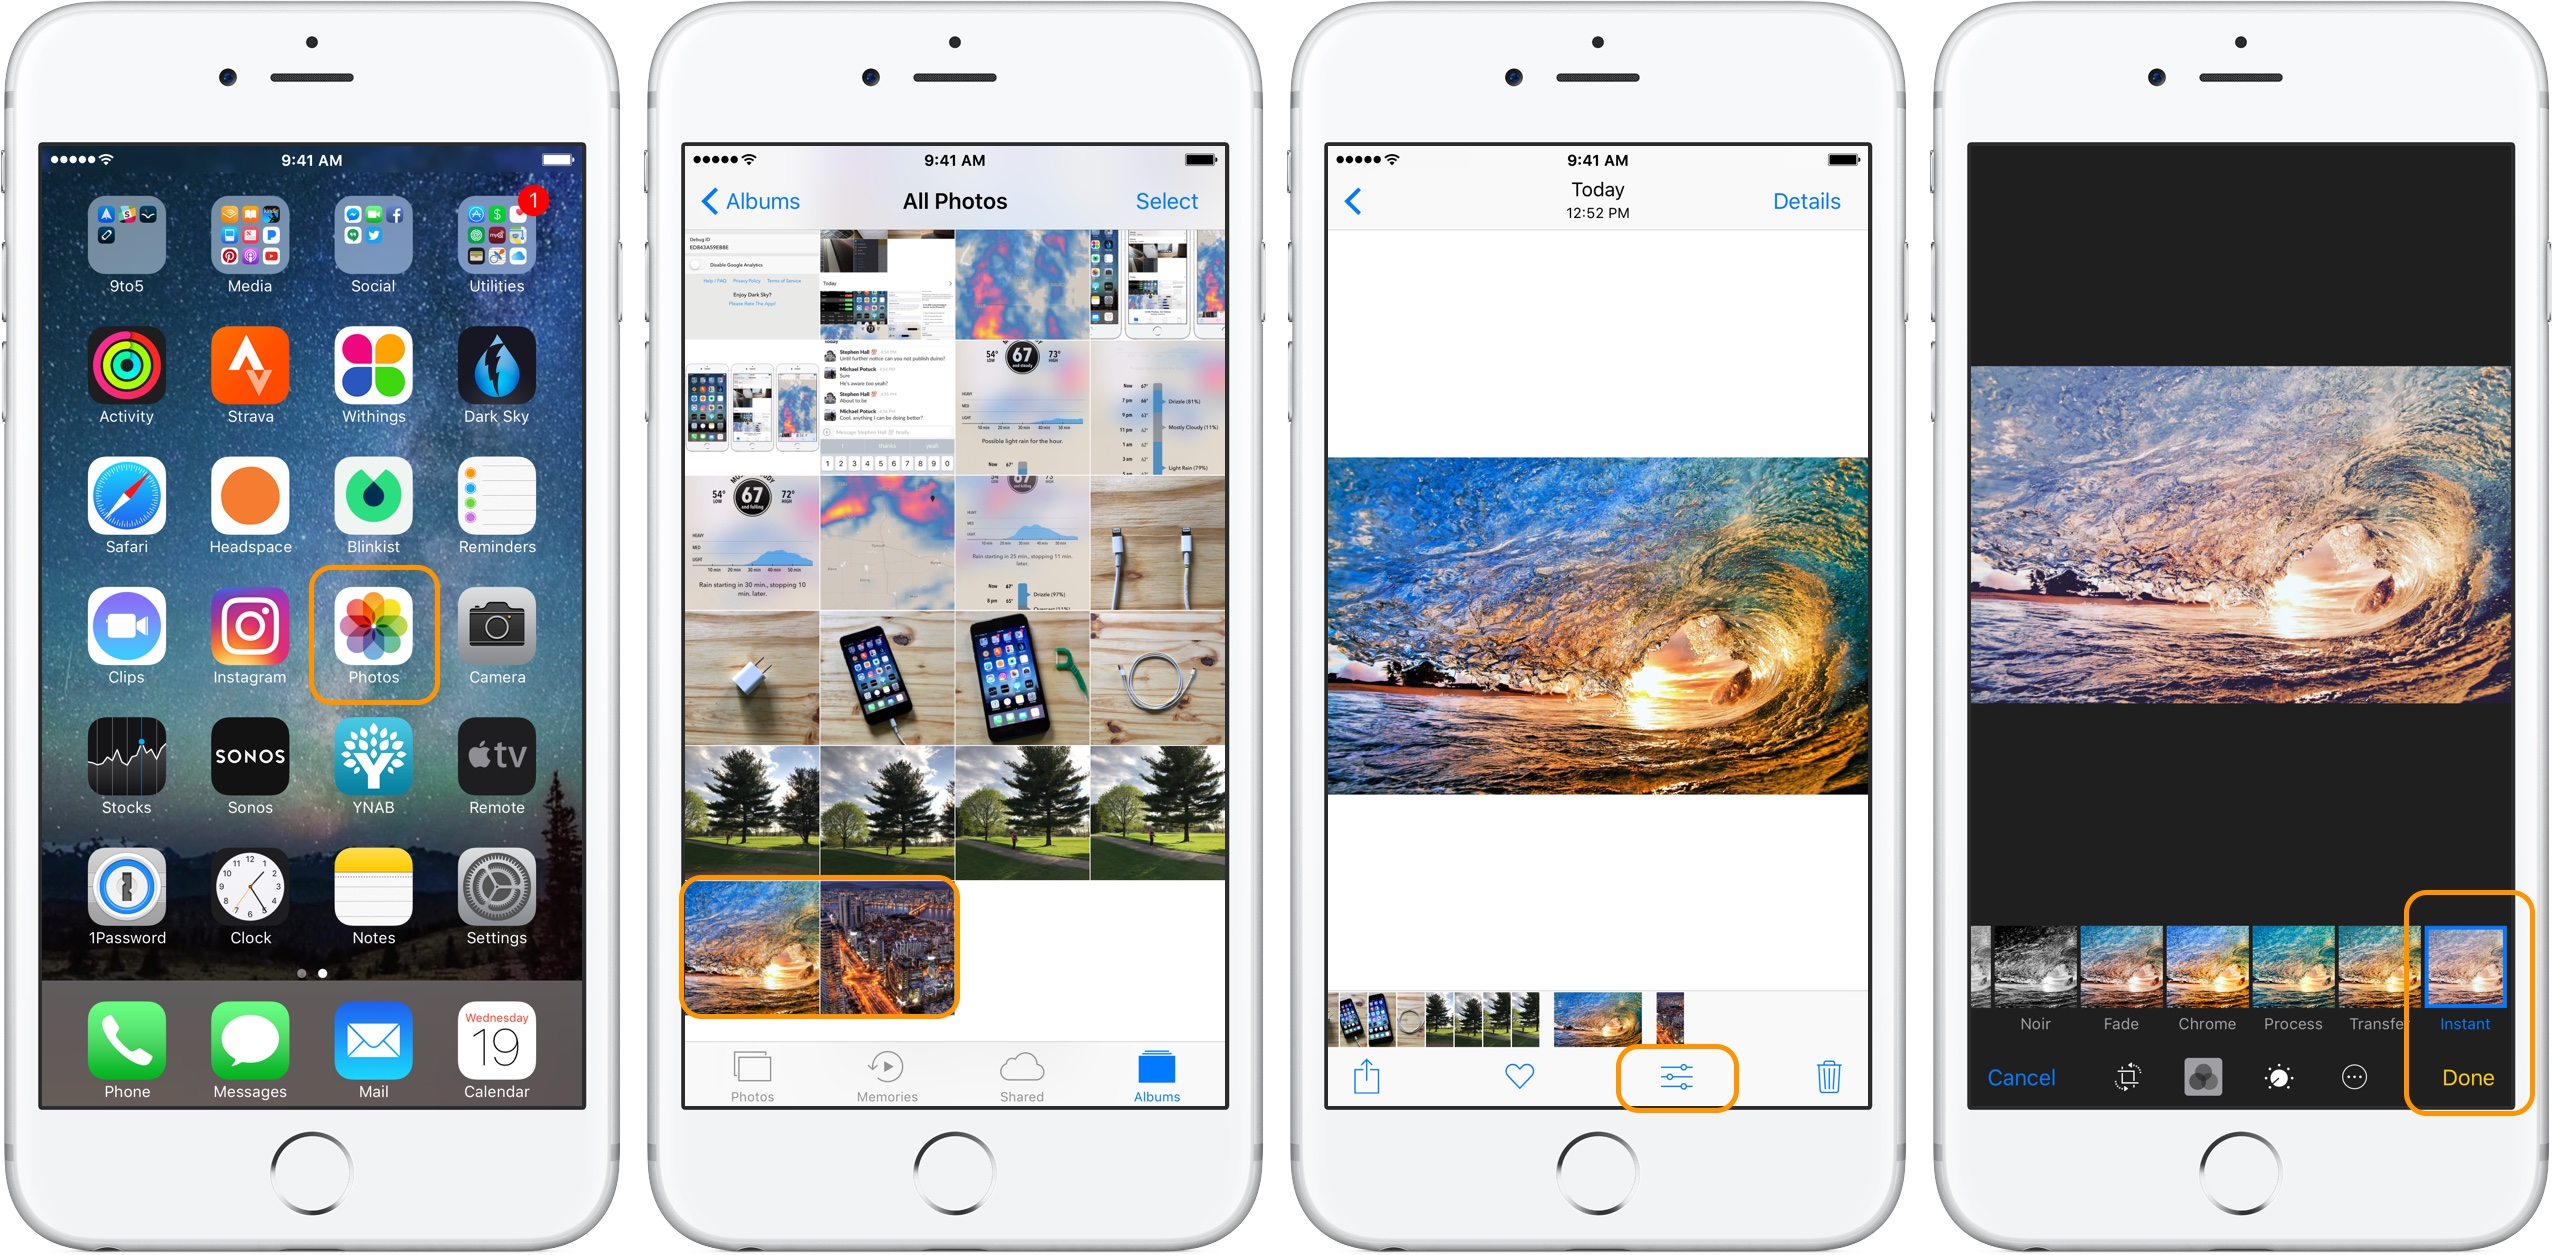 Image showing the Photos application in an iPhone and that the uploaded photos have syncronized